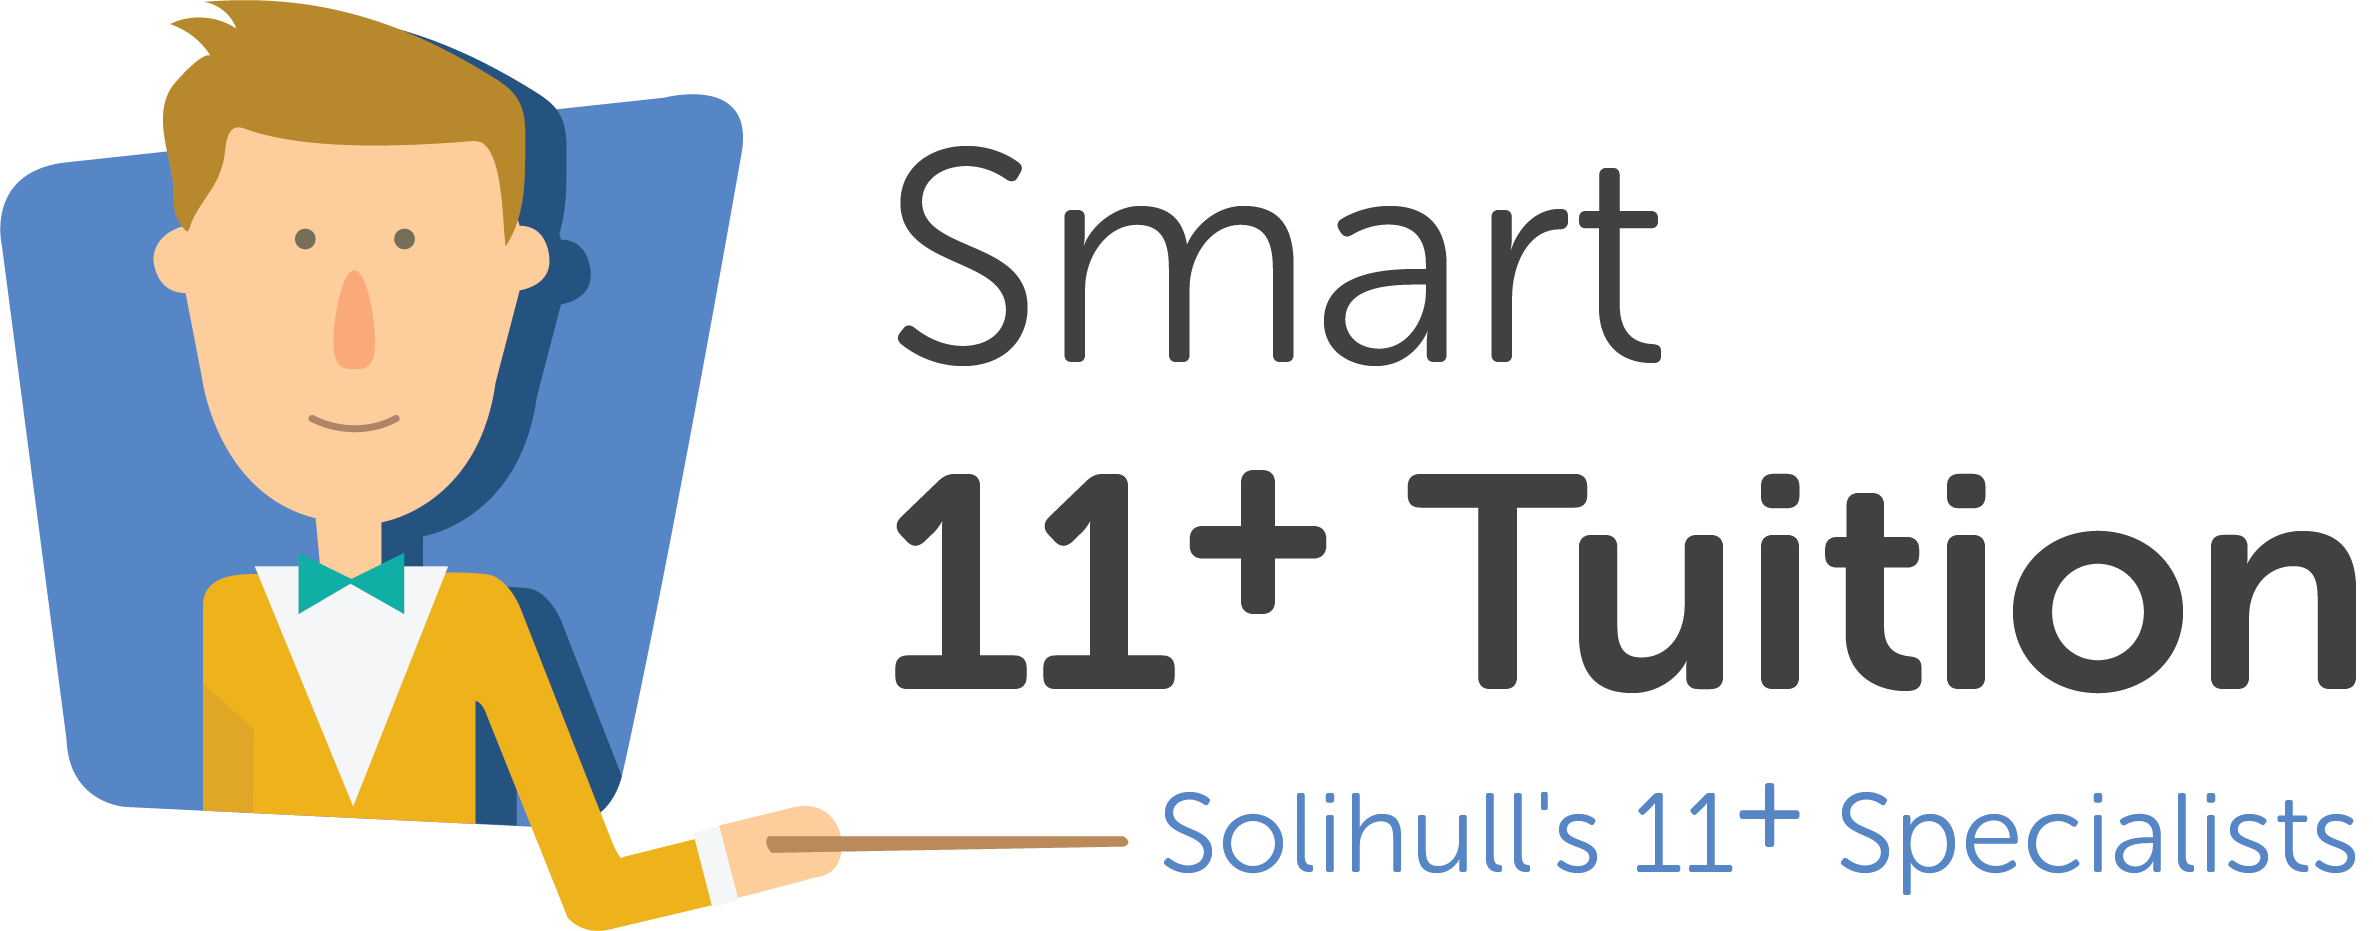 Smart11+Tuition-Logo-RGB